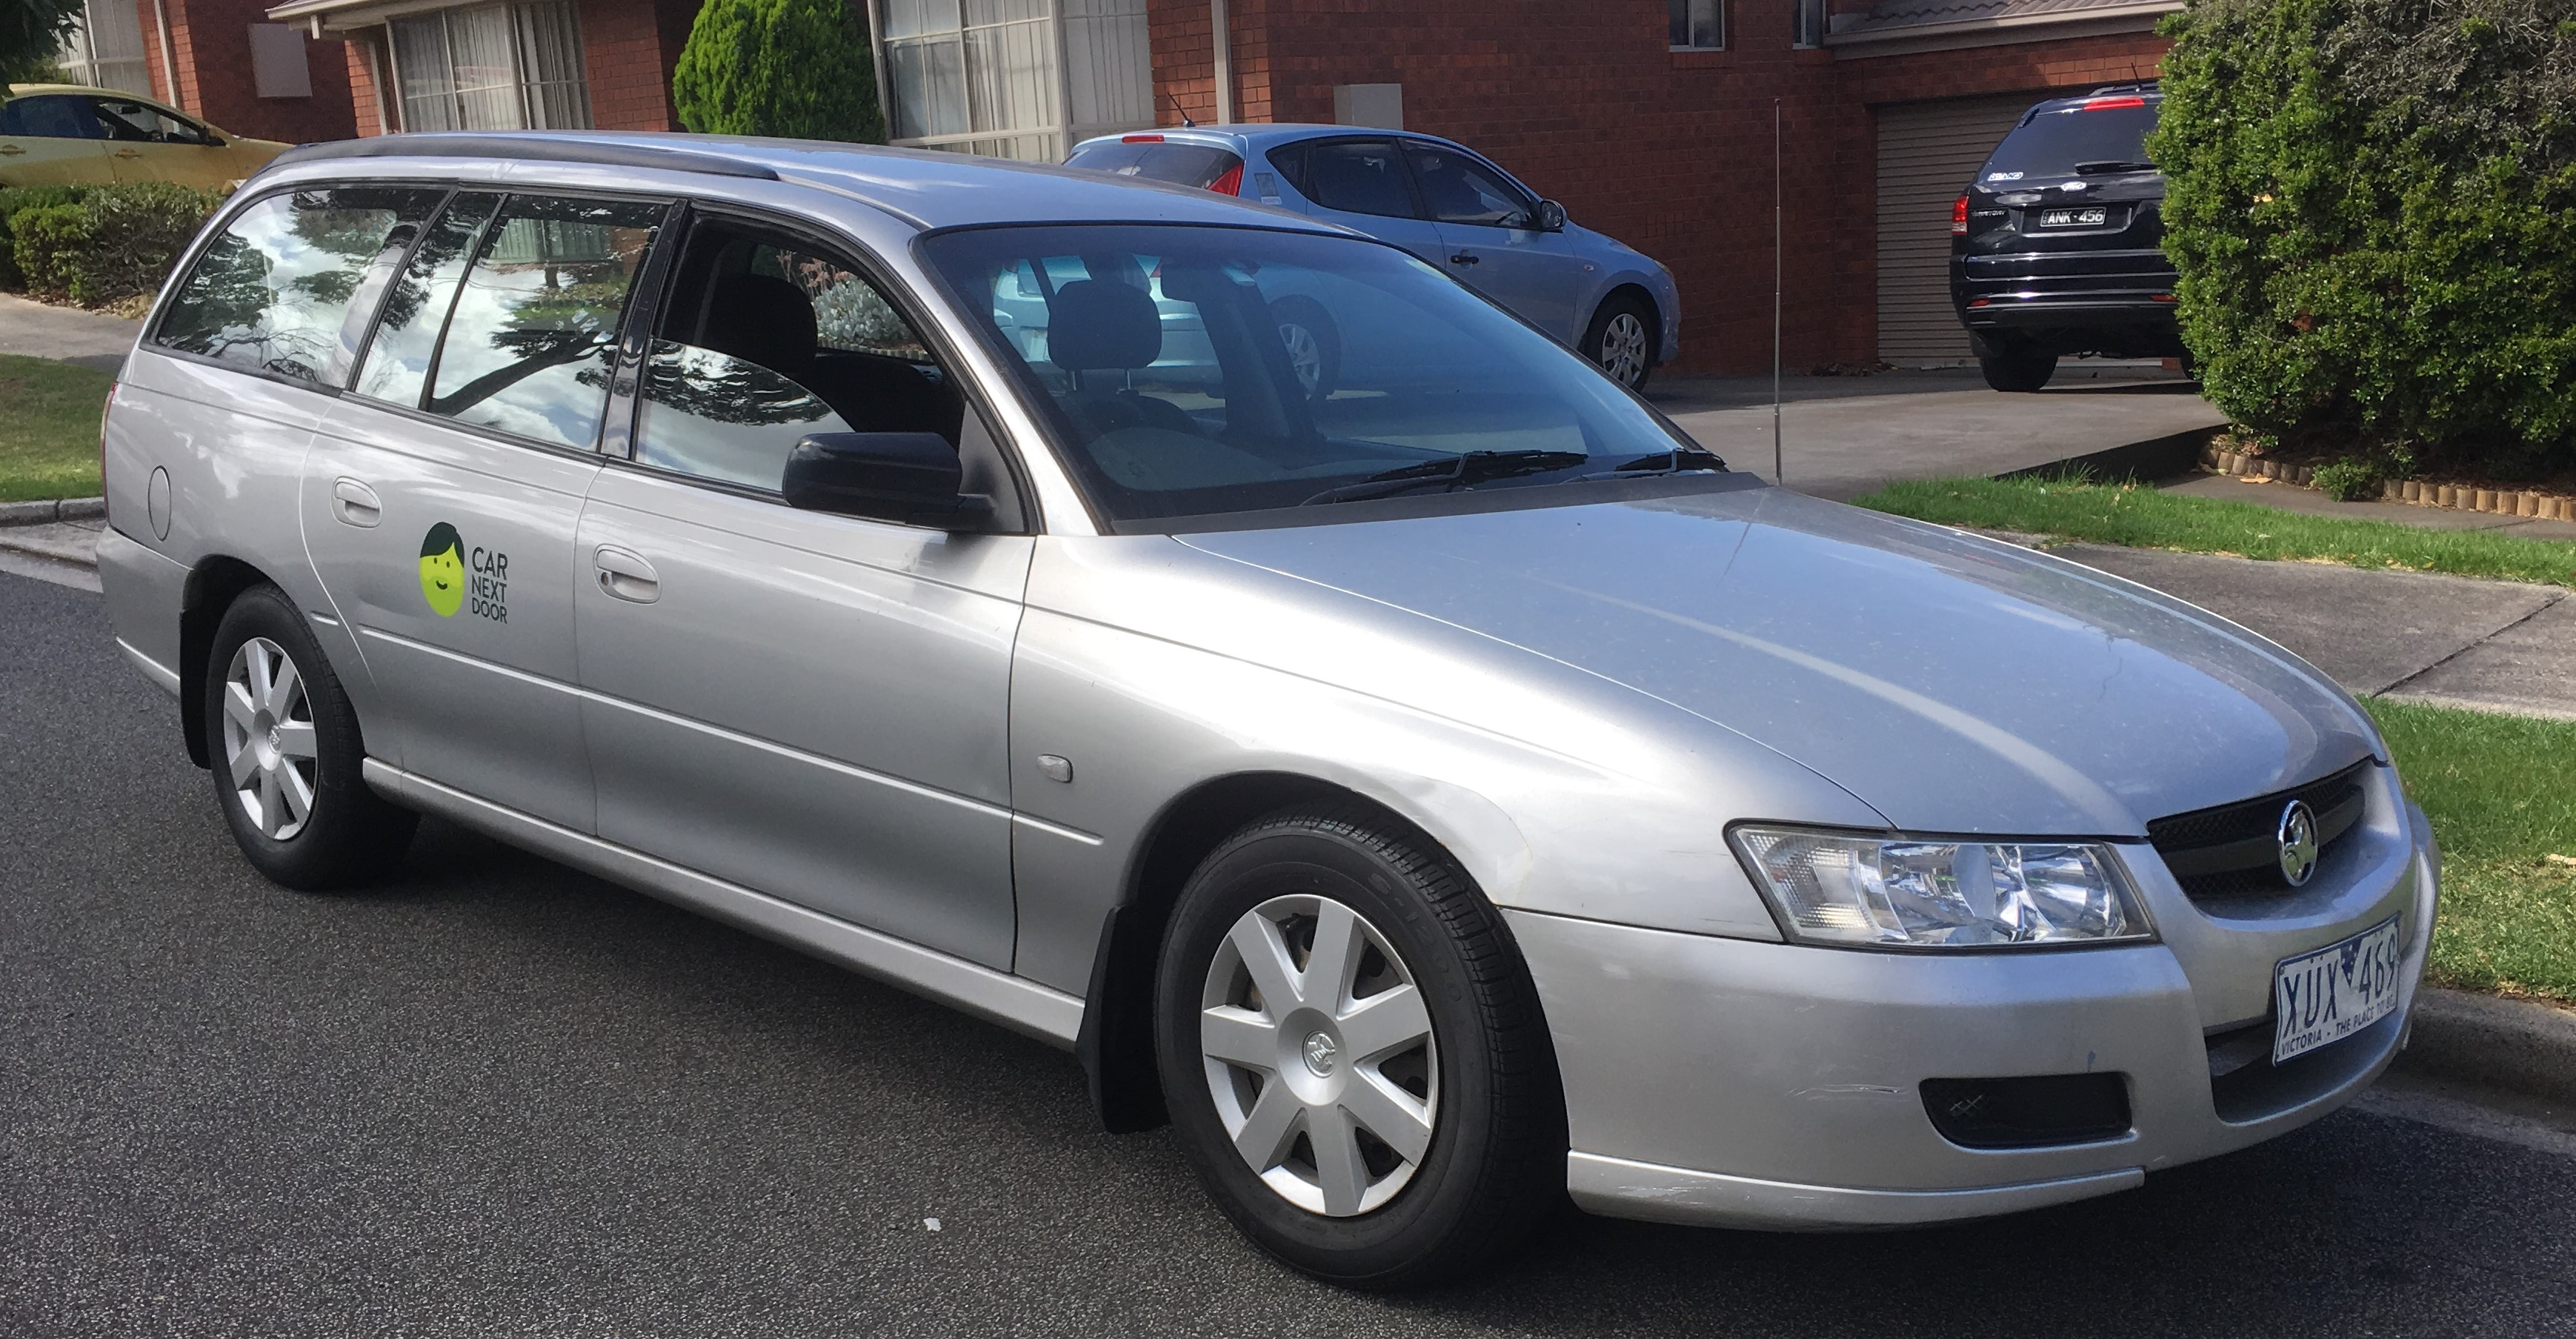 Picture of Brett's 2007 Holden Commodore